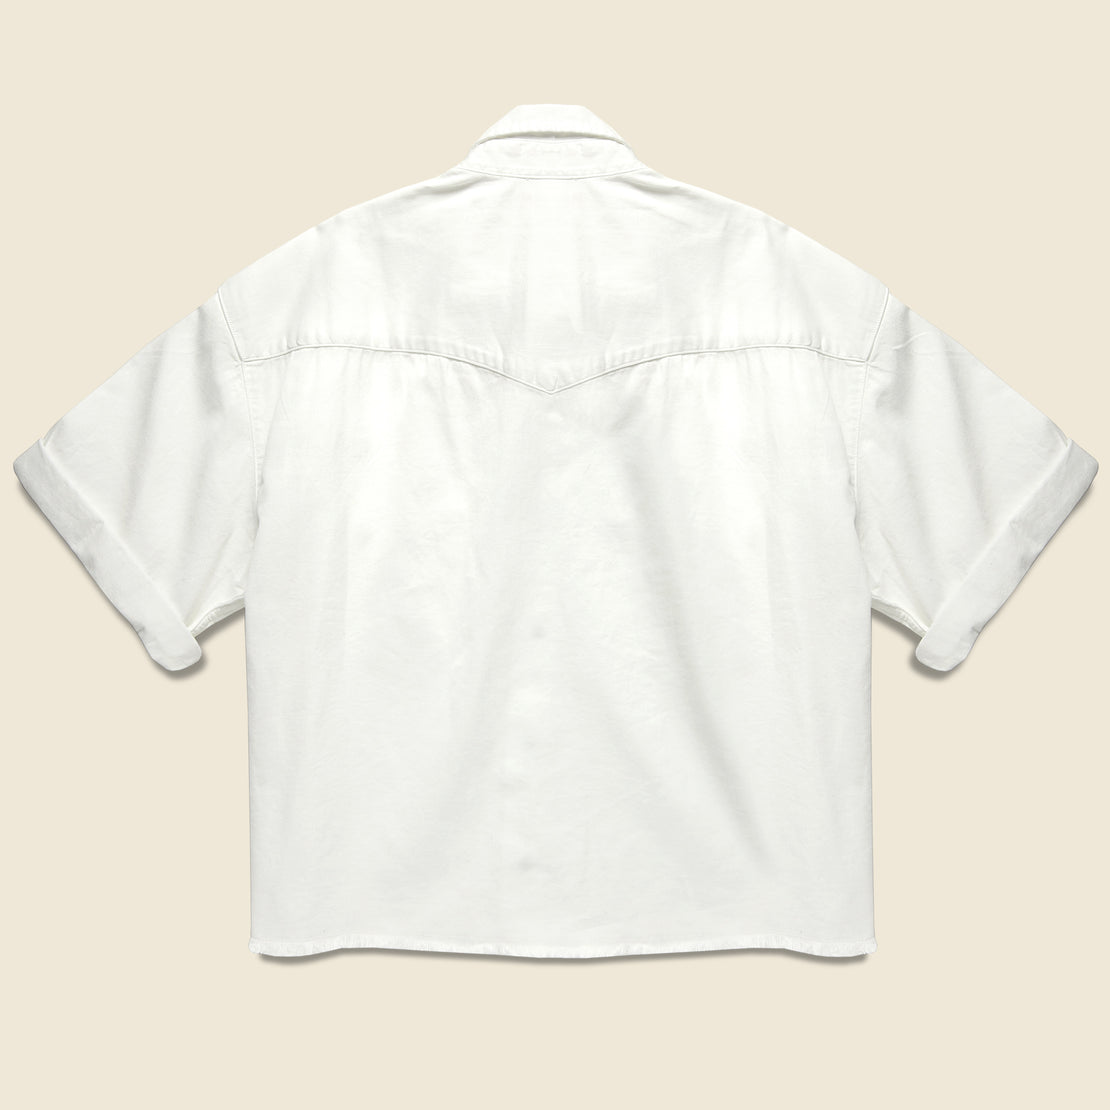 Sunny Western Shirt - Bright White